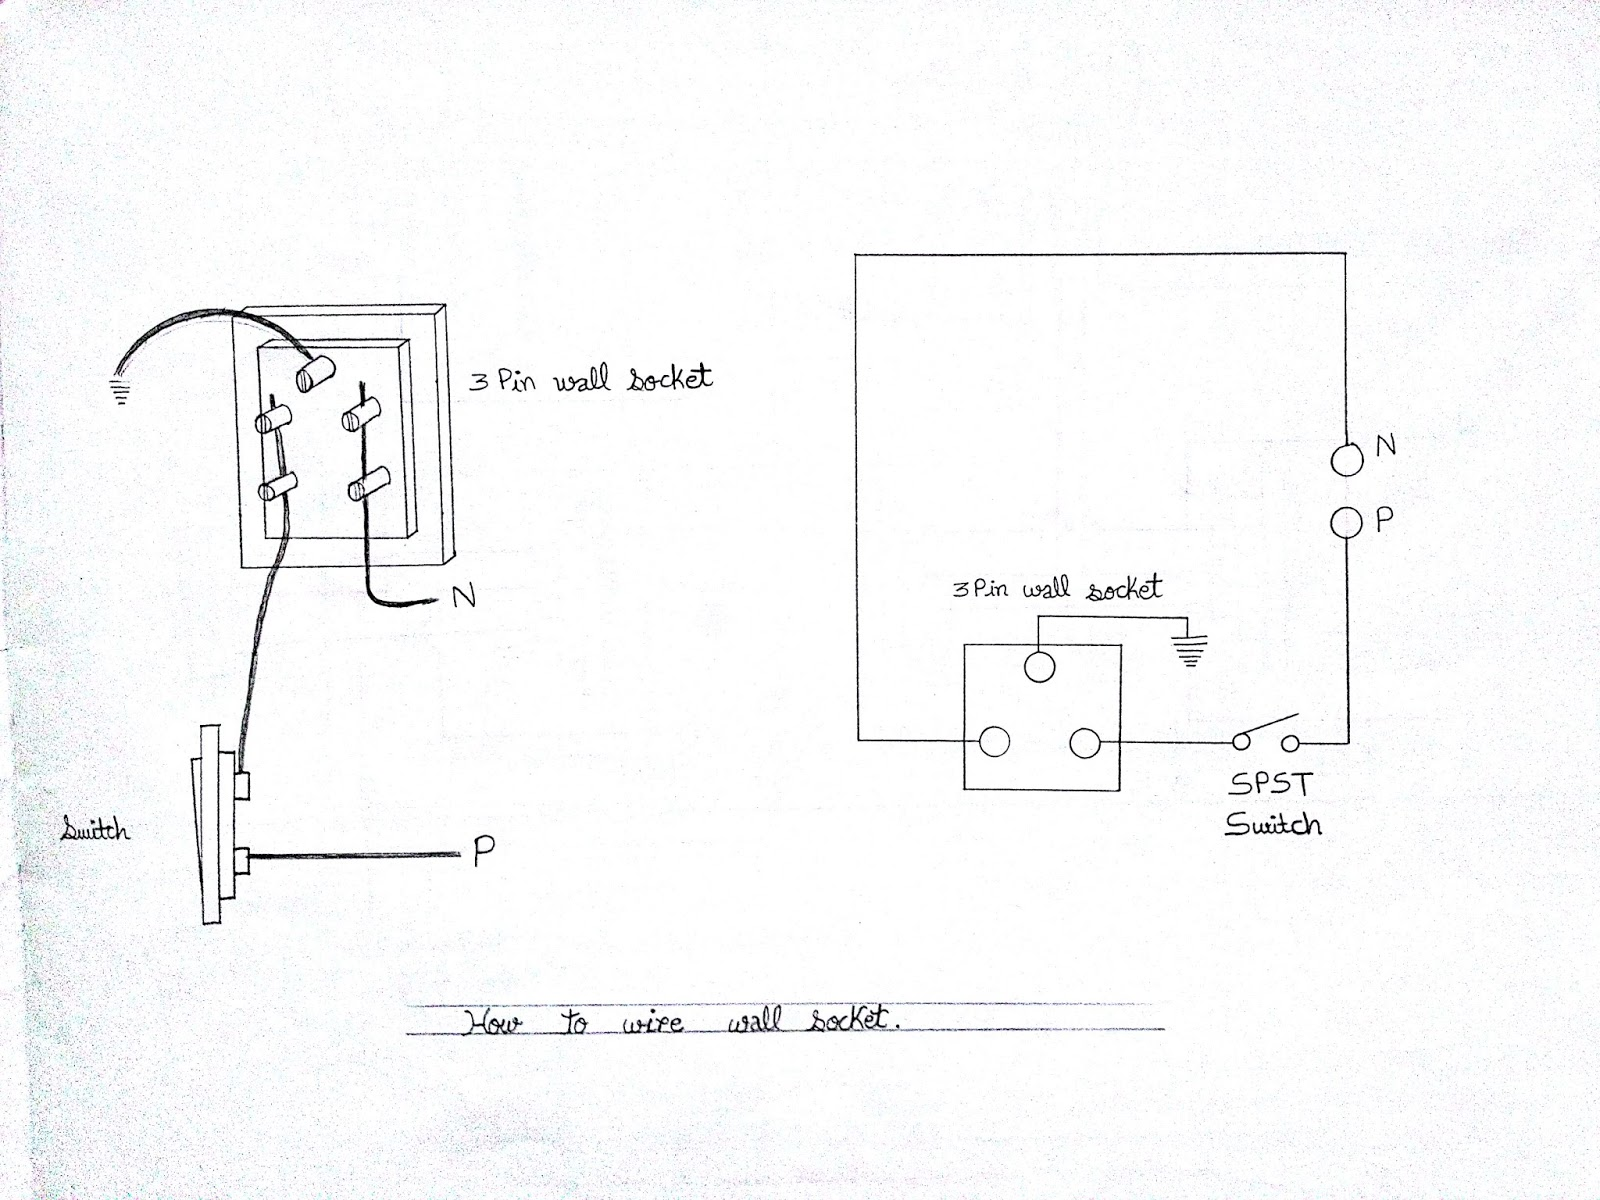 small resolution of learn electrician electrical wiring diagrams of switches sockets 2 way switches wiring diagram of 1